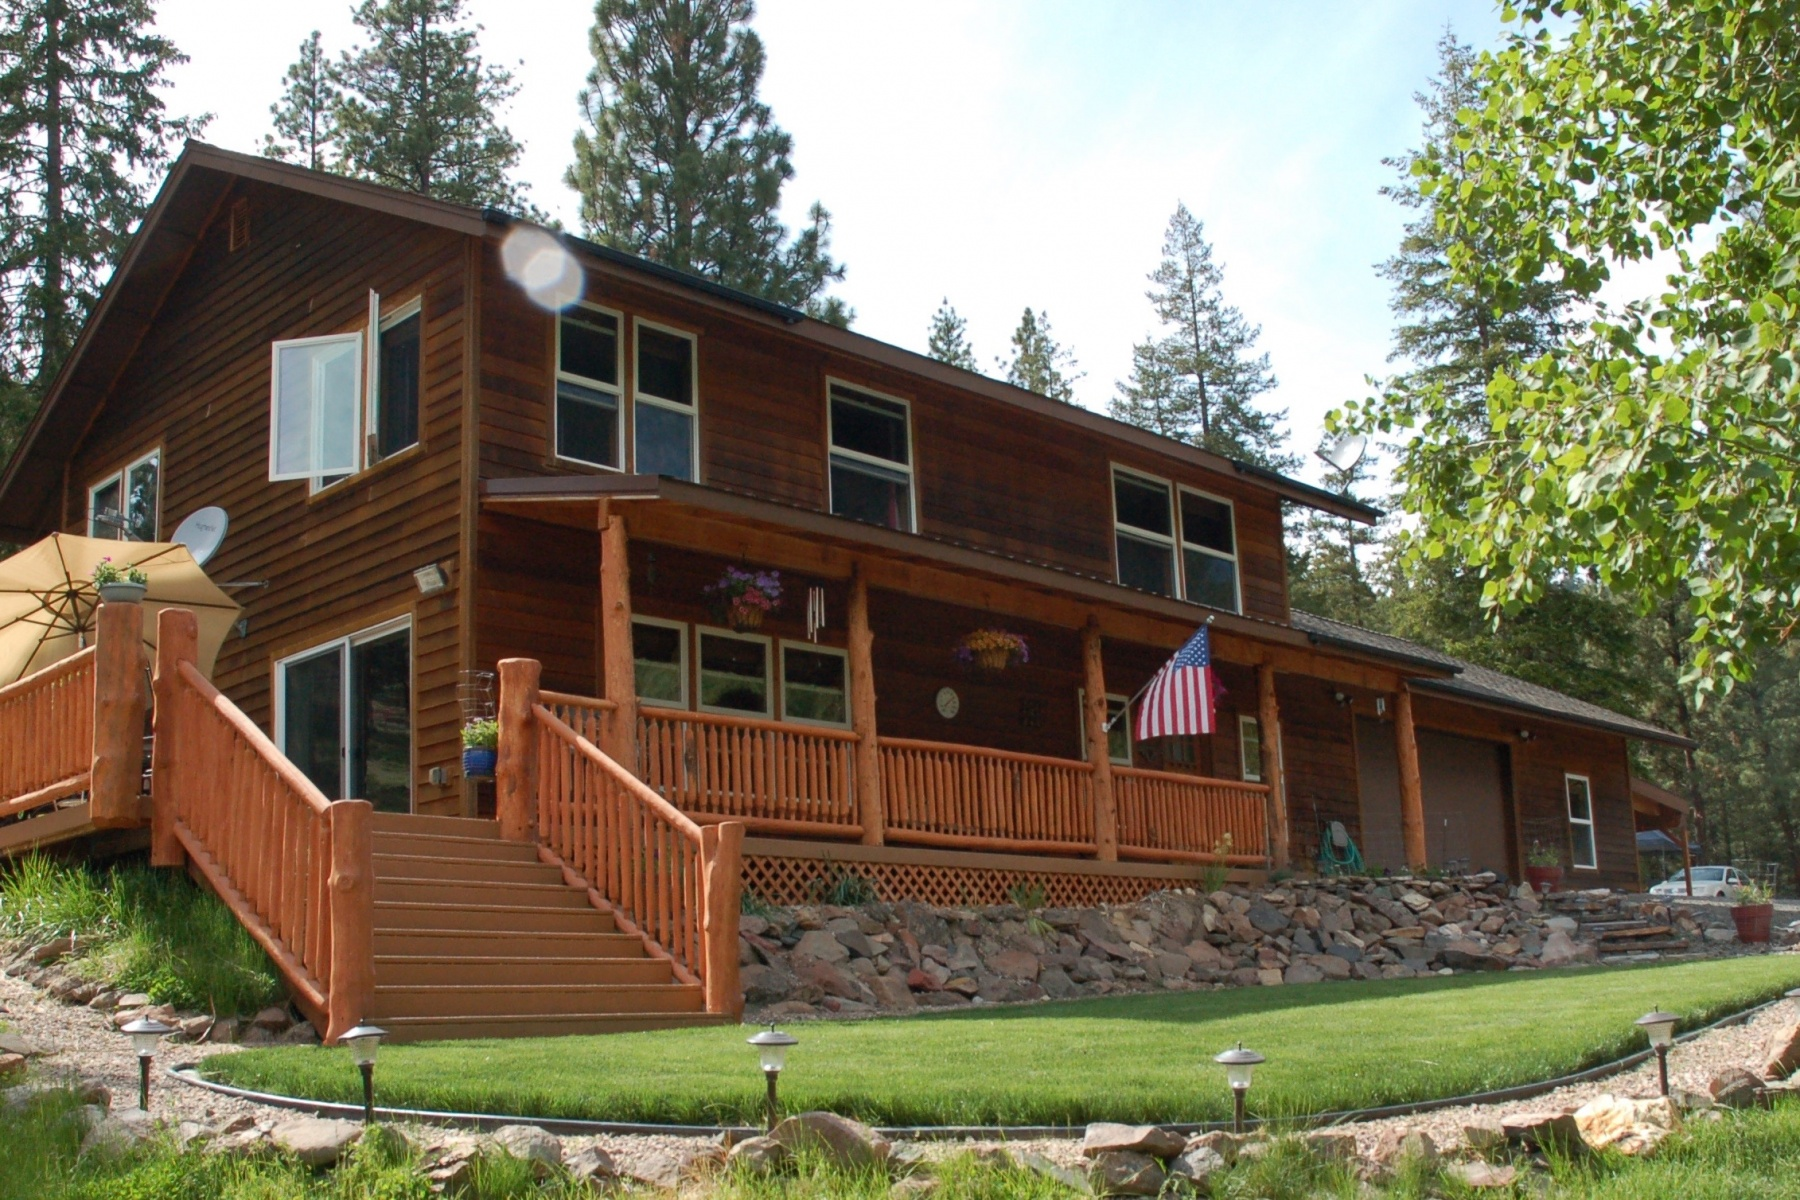 Single Family Home for Sale at 16166 NE Sealy Springs 16166 NE Sealy Springs Rd Prineville, Oregon 97754 United States